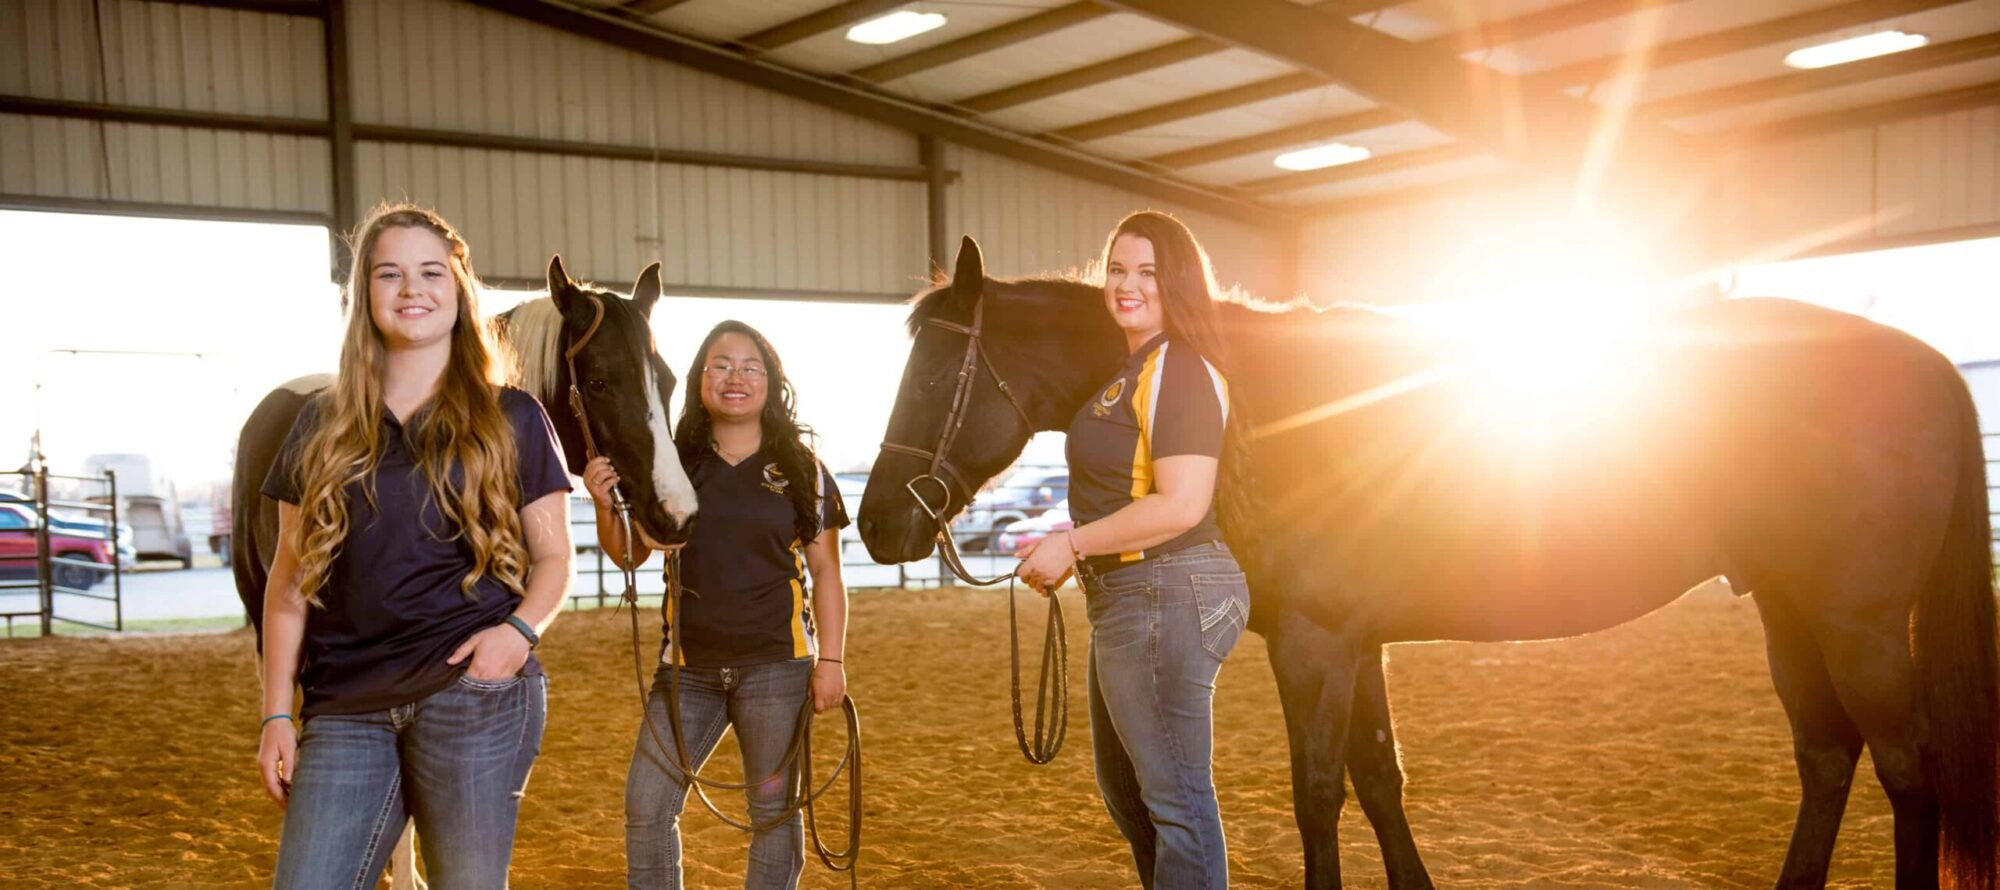 Two women holding horses and other women .background 'sunshine'